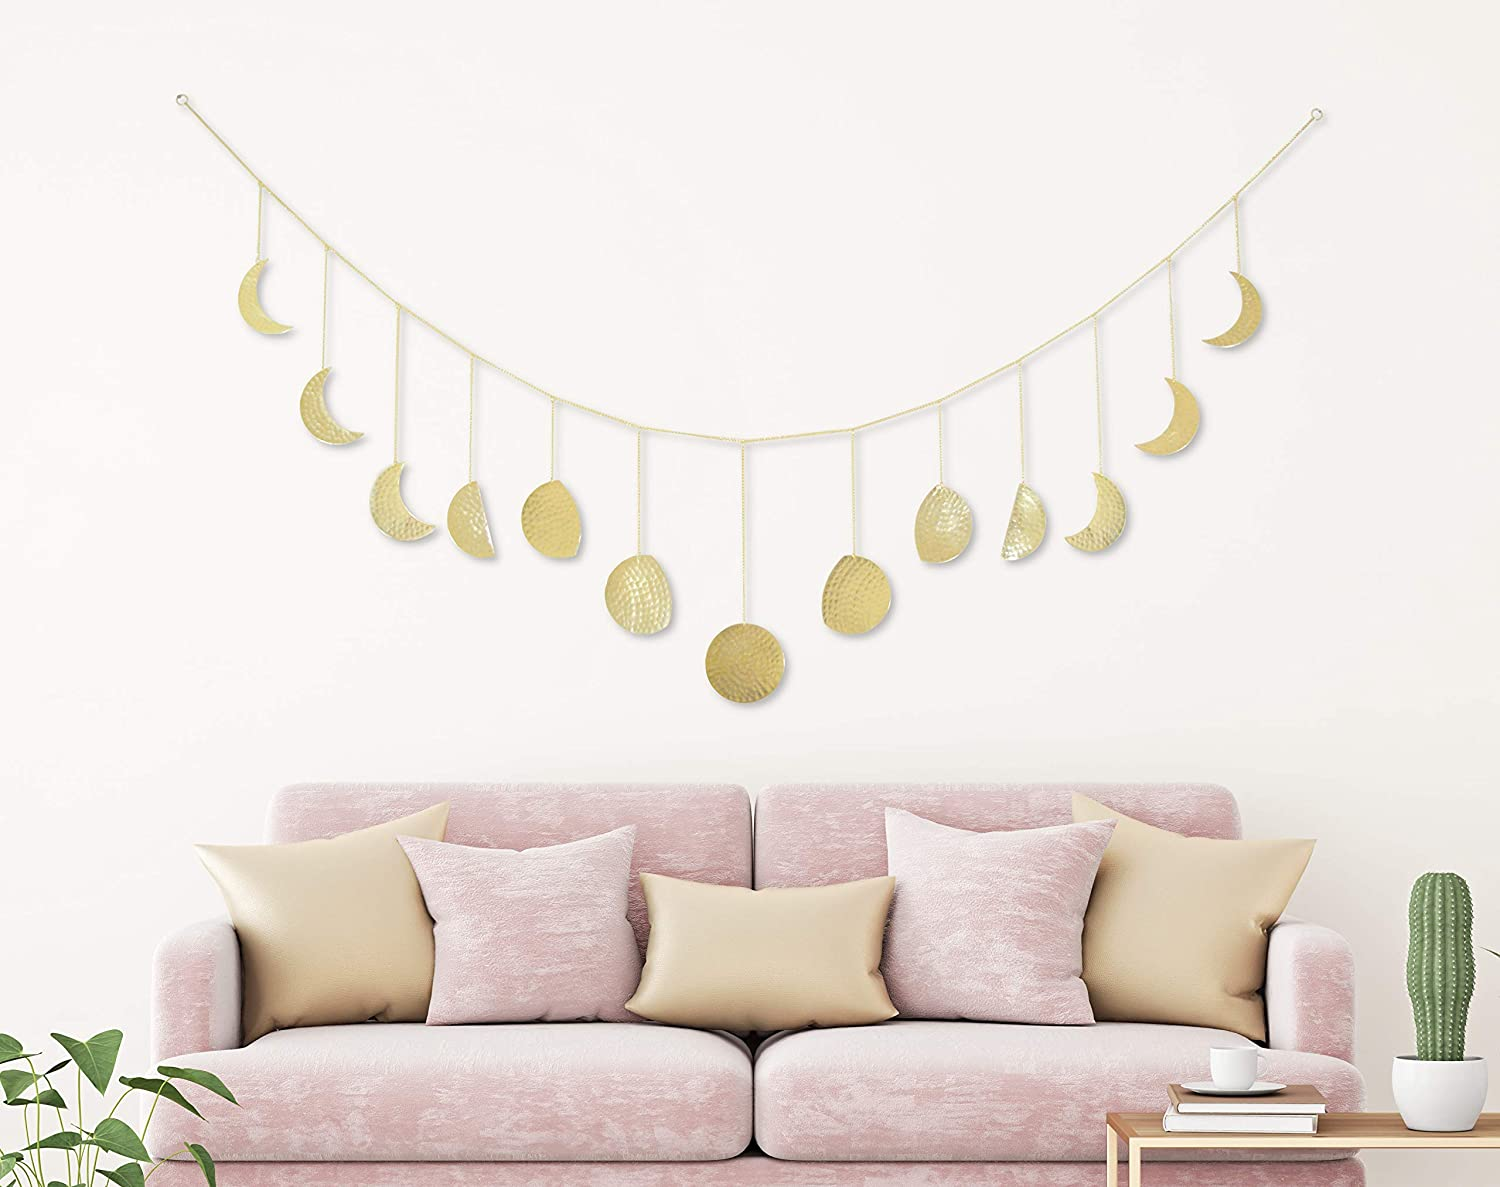 Gold Retr Moon Decor Moon Phase Garland Wall Hanging Wood Moon Boho Wall Decor Moon Decor Wall Art Apartment Dorm Office Nursery Living Room Bedroom Decorative